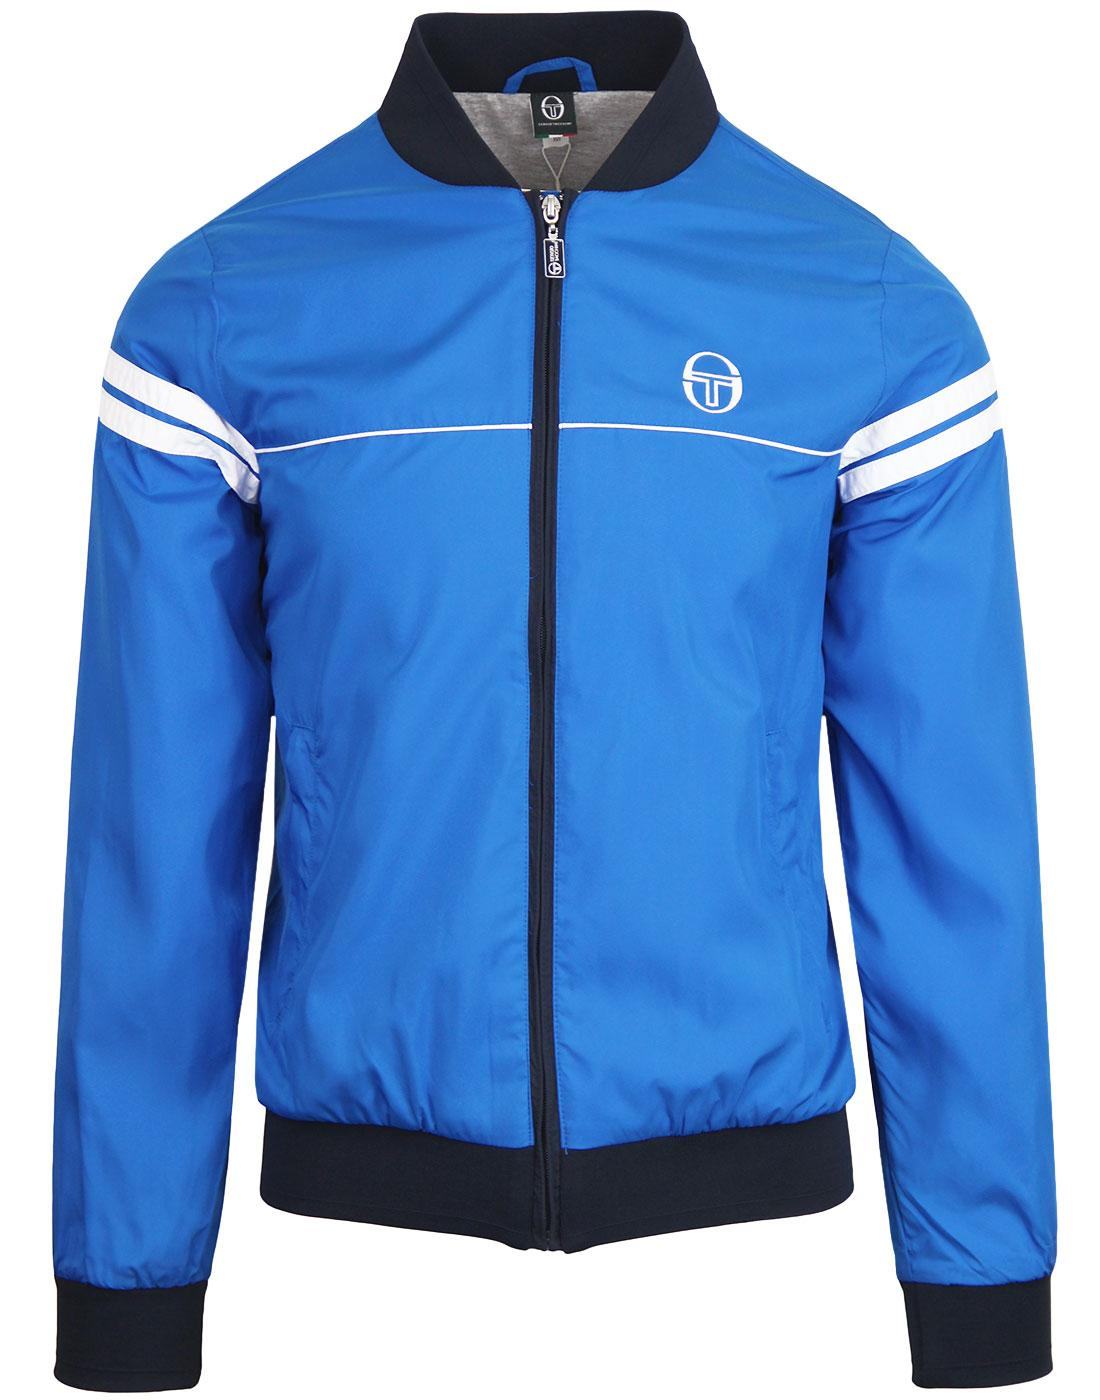 Orion SERGIO TACCHINI Retro 1980s Archive Jacket